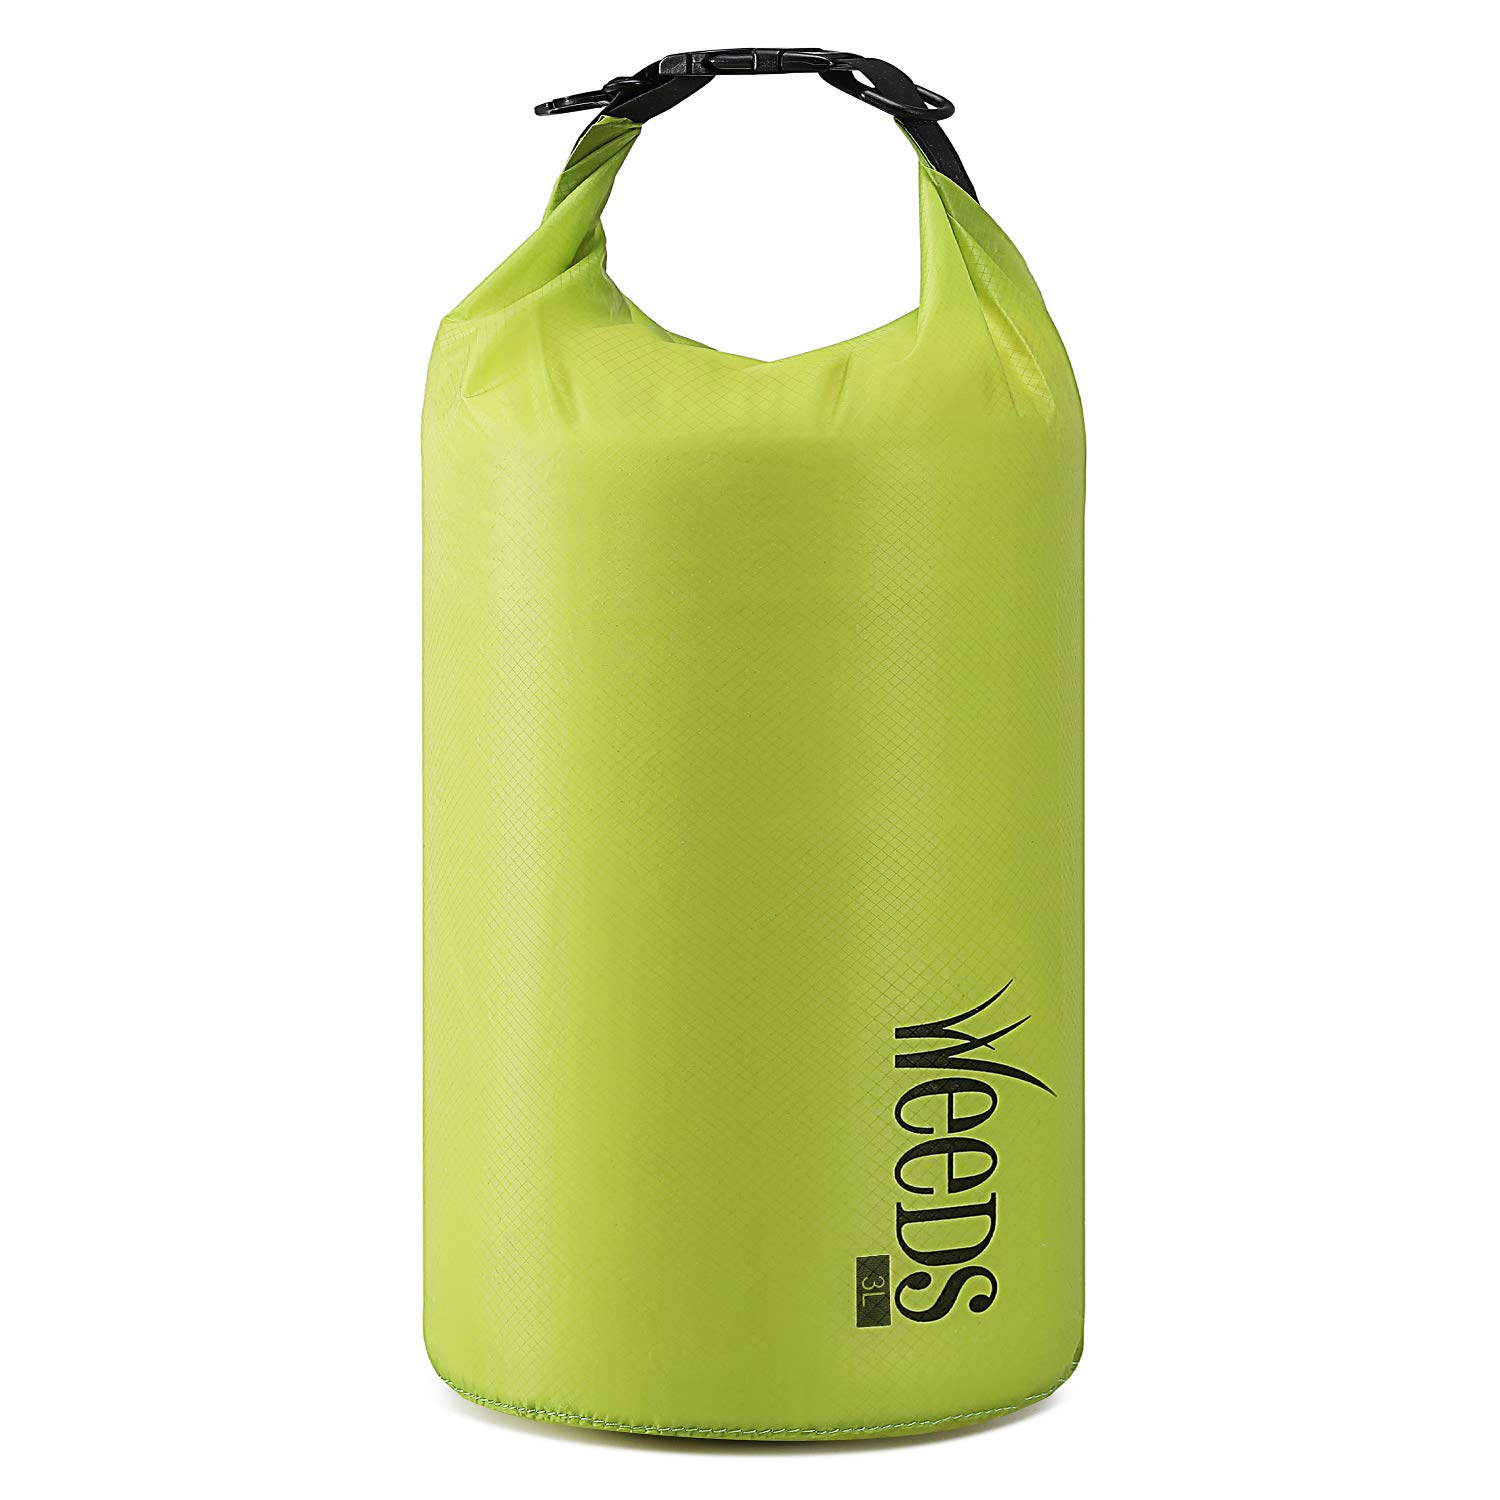 Weeds Waterproof Ultra Lightweight Dry Bag Dry Sack Roll-Top Closure Compression Sack for Swimming Fishing Boating Rafting Canoeing Kayaking Hiking and Camping